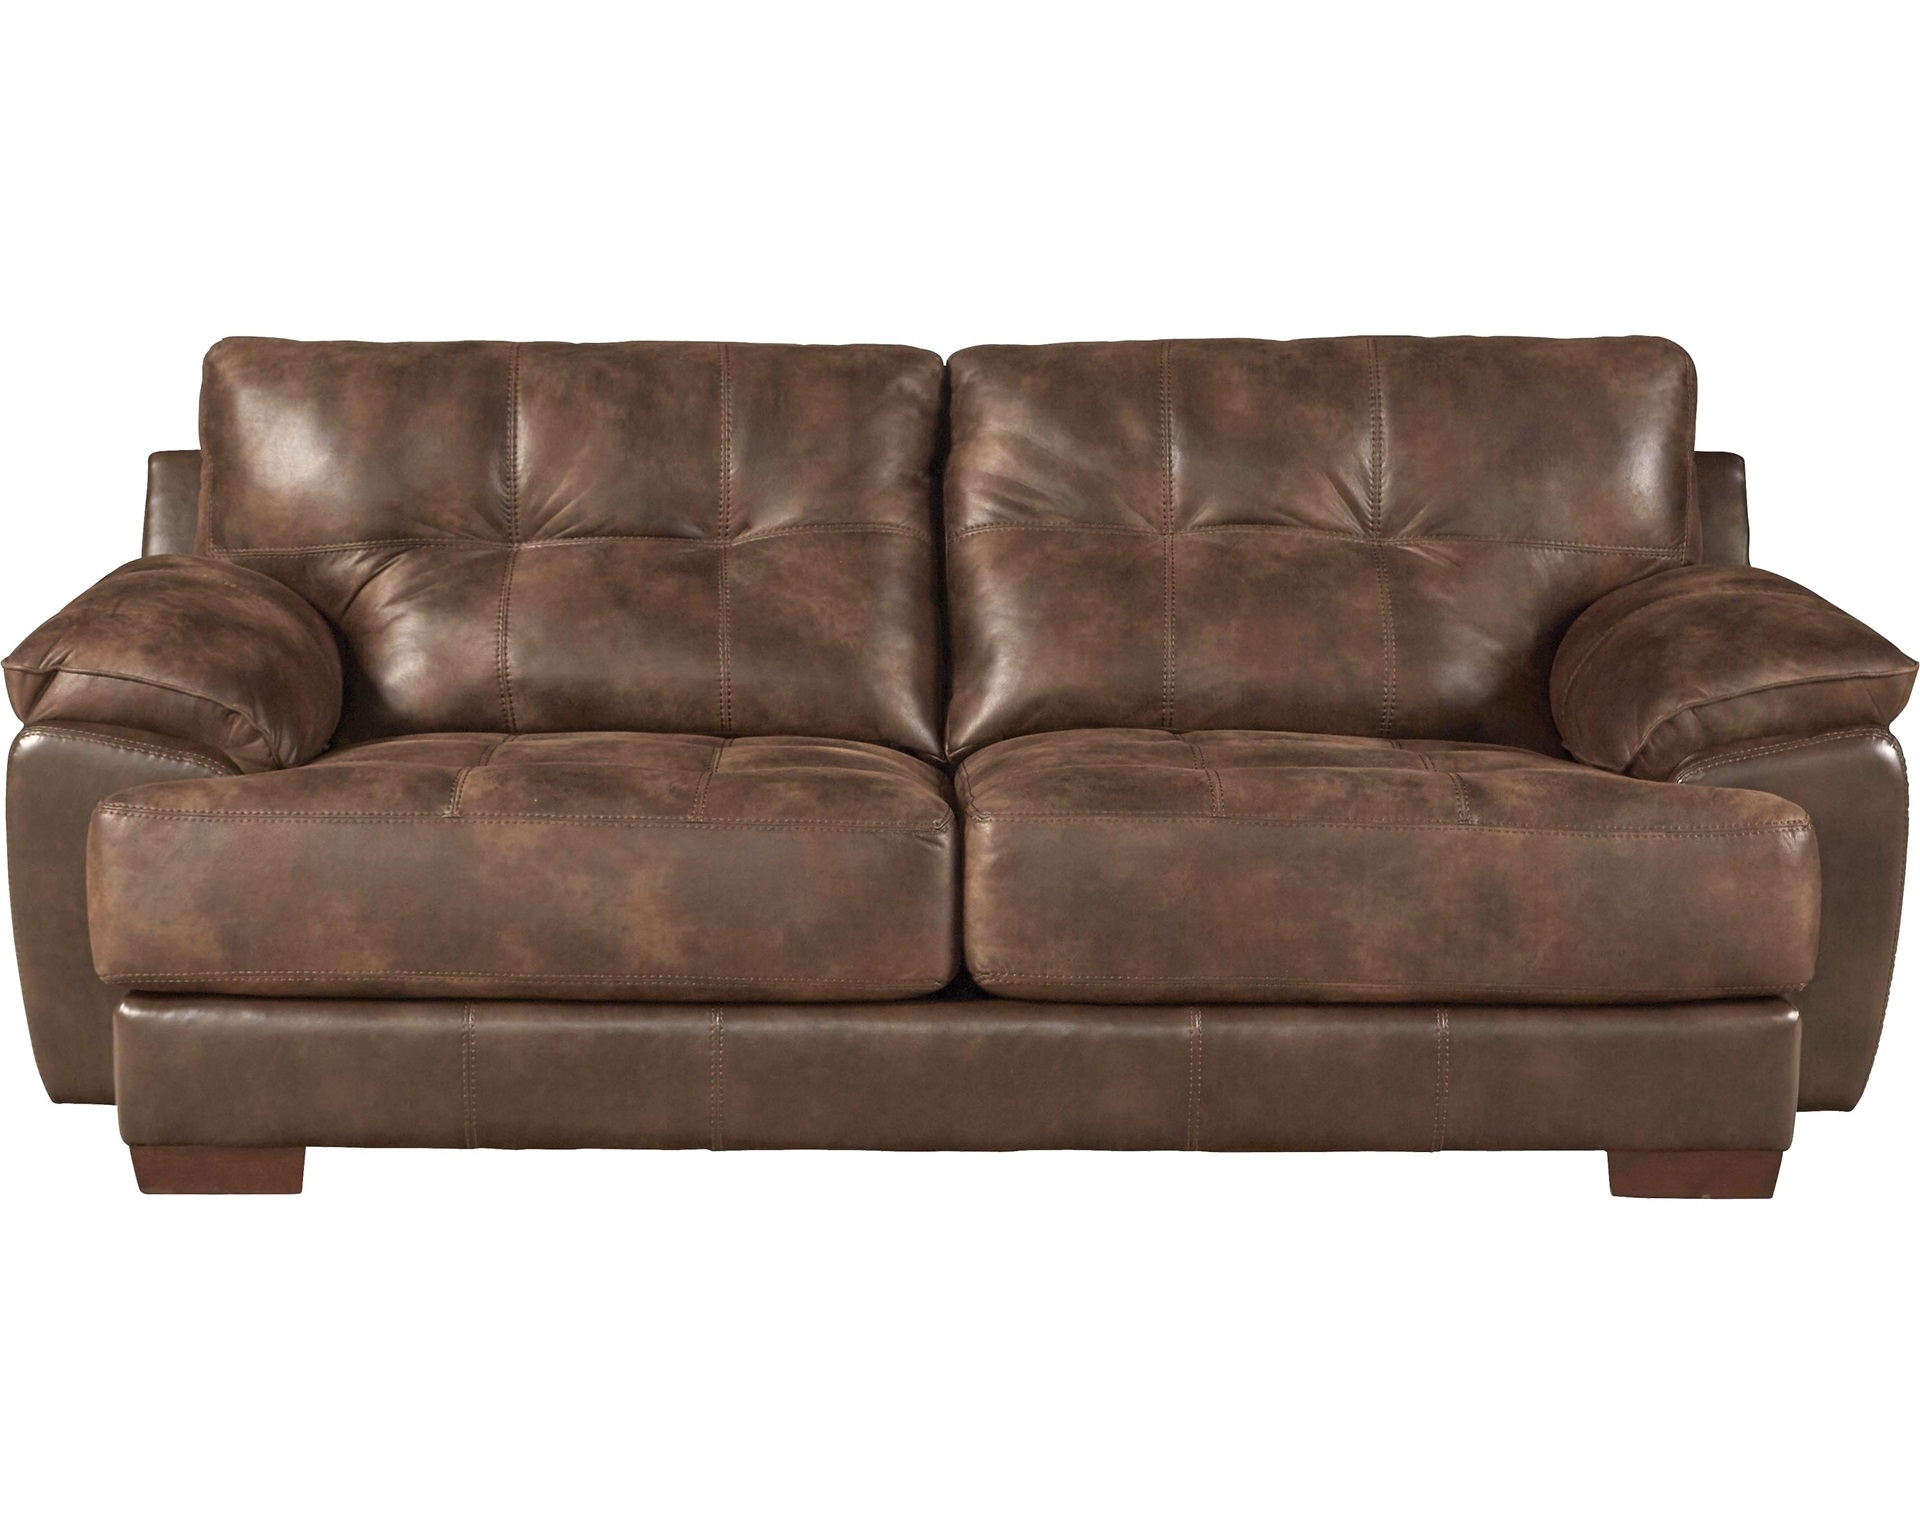 Jackson Furniture Drummond Living Room Collection regarding Jackson 6 Piece Power Reclining Sectionals (Image 16 of 30)